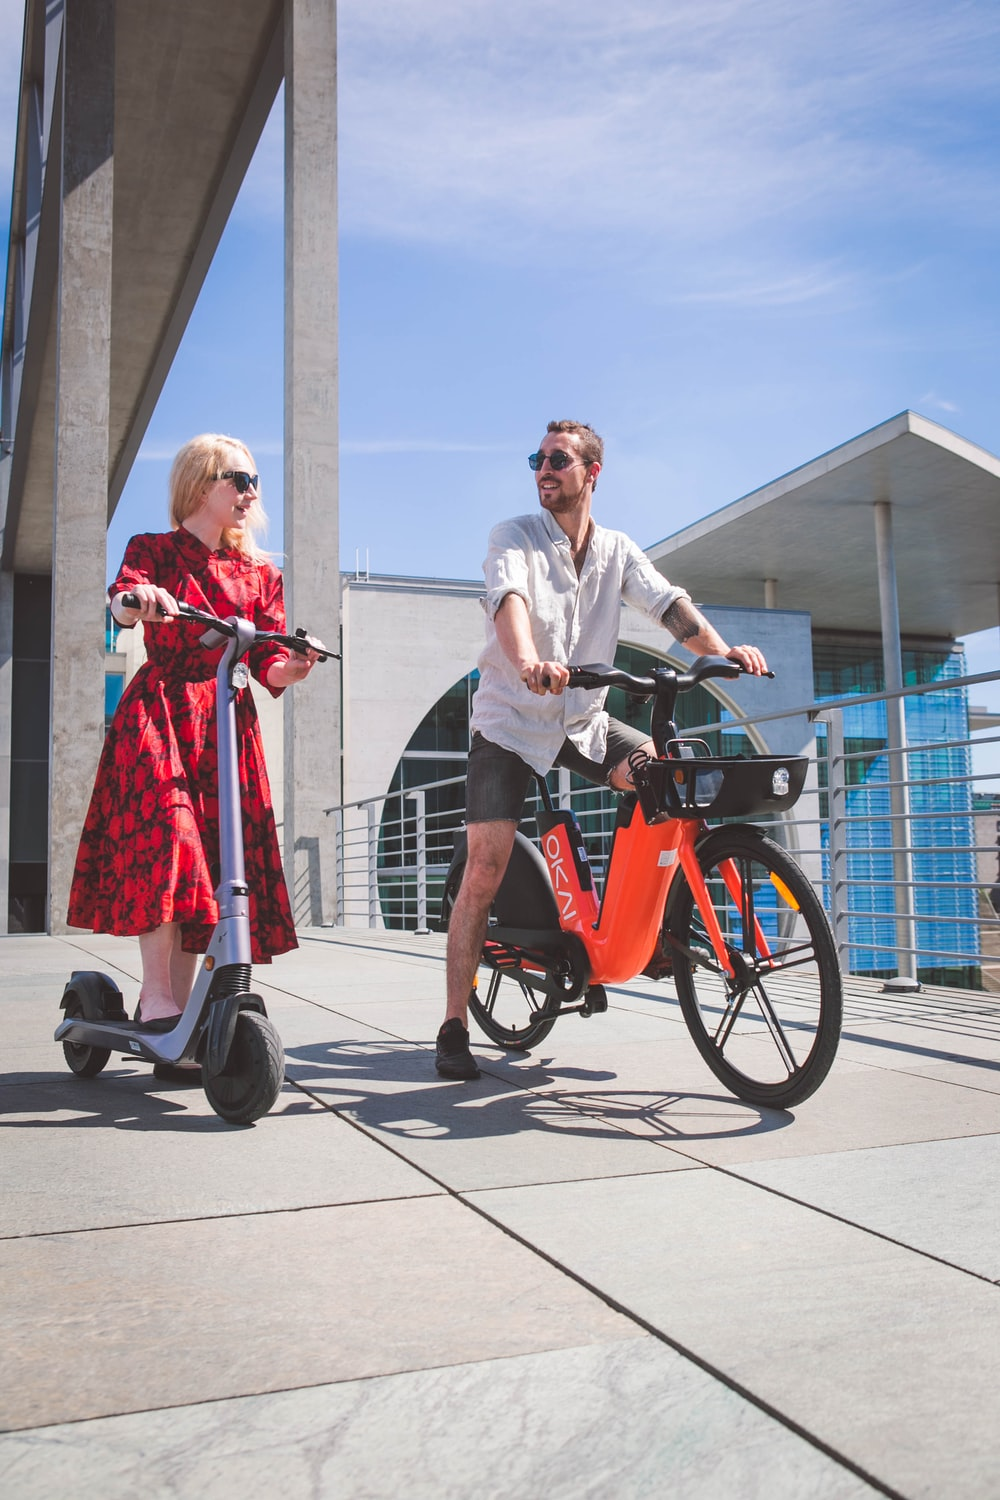 Women with an electric scooter and man with an electric bike standing next to each other